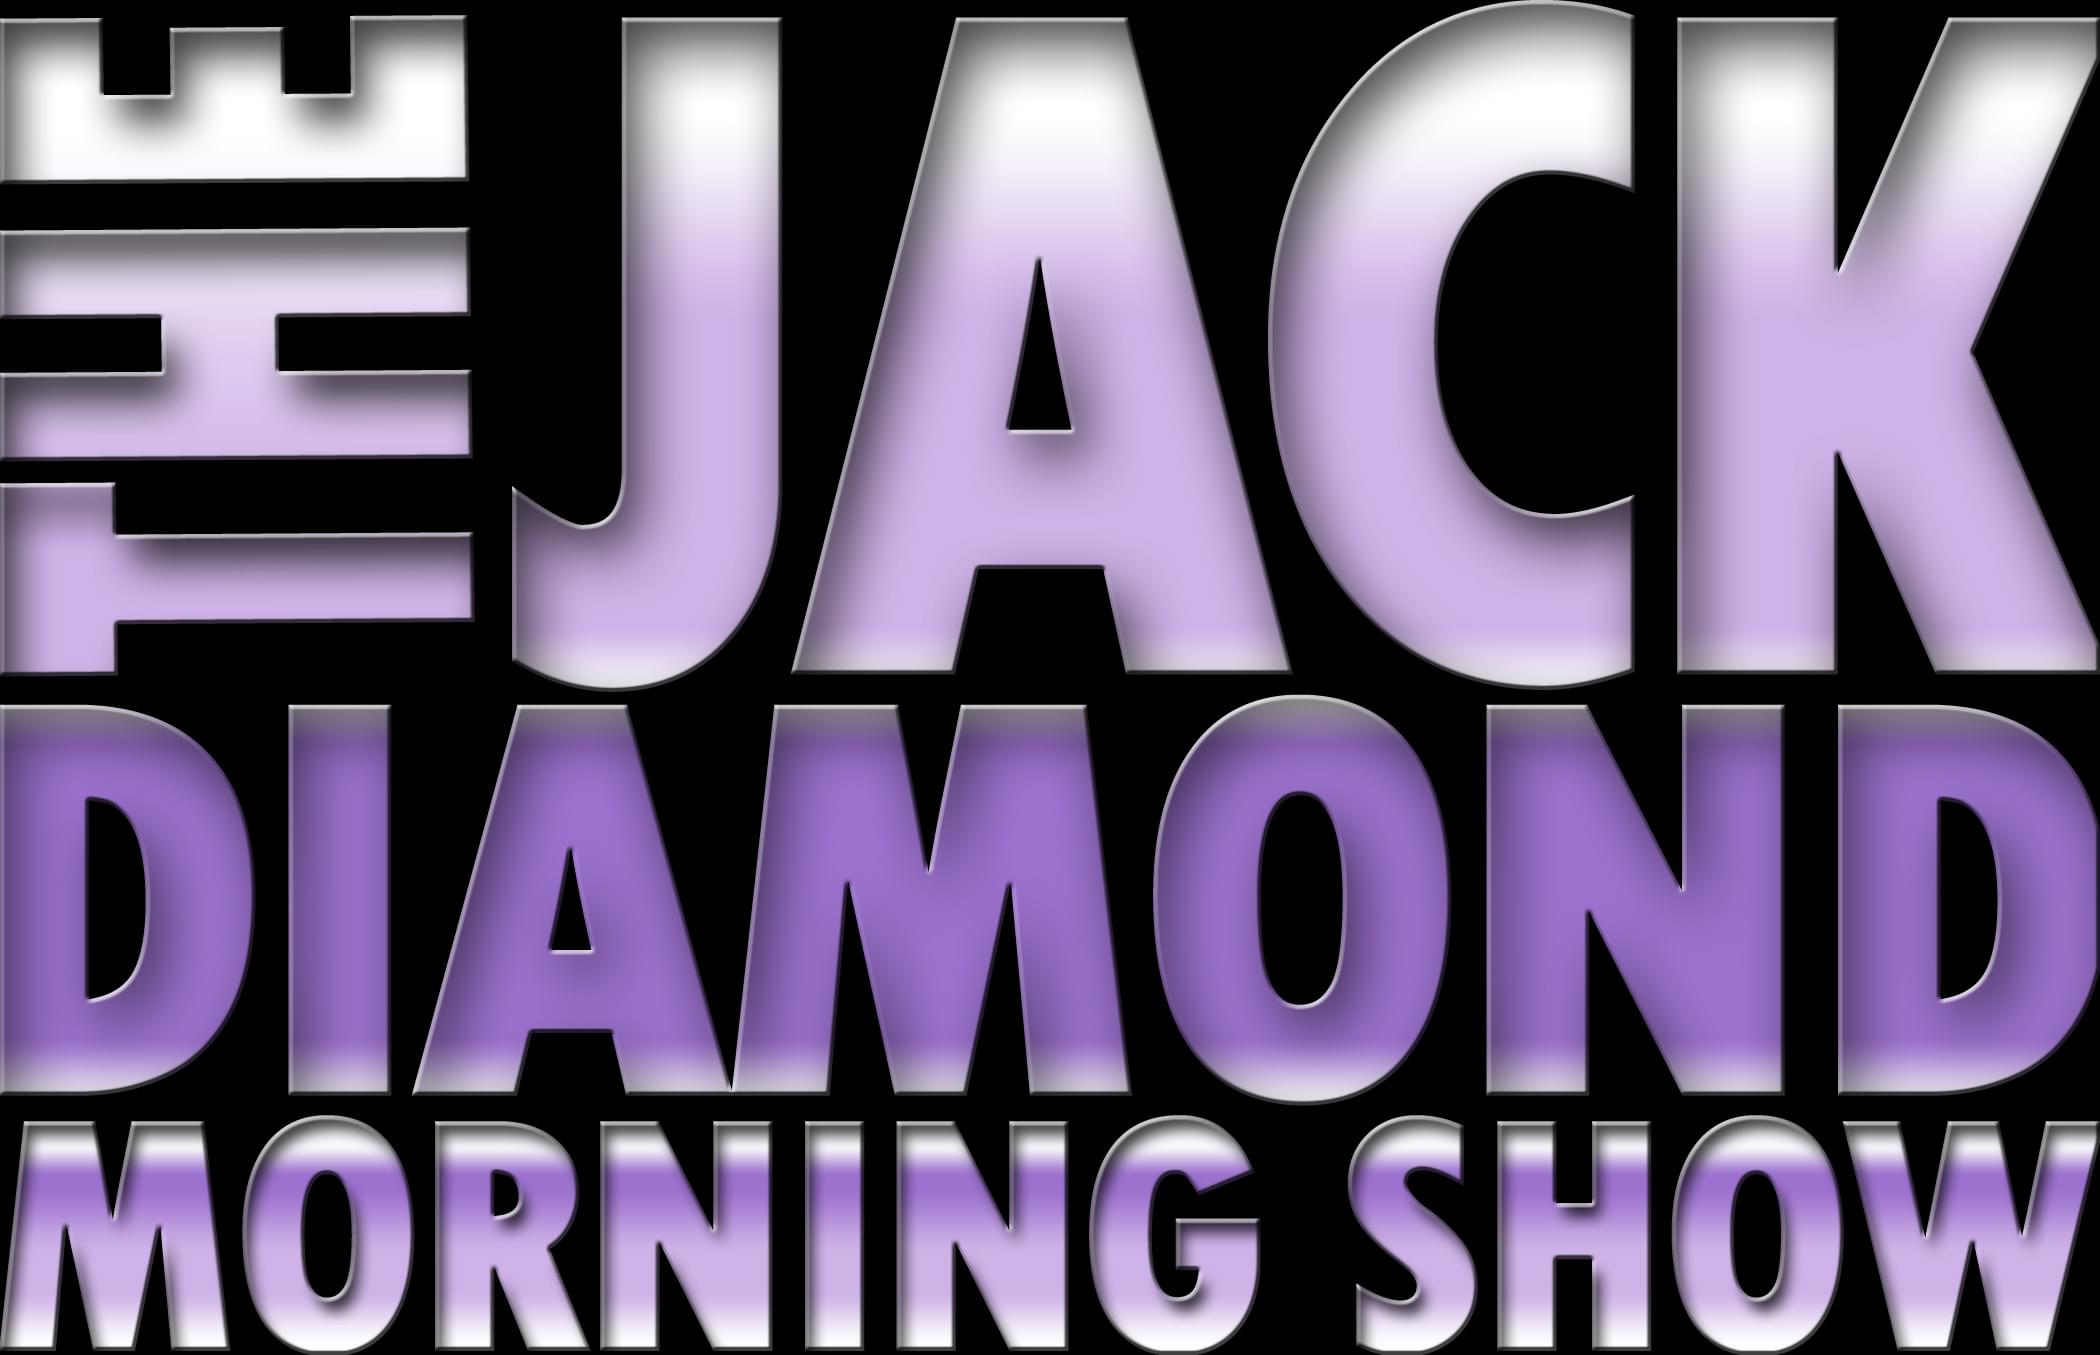 Listen to The Jack Diamond Morning Show (02-14-2019) The Show, the whole Show, and nothing but the Show!